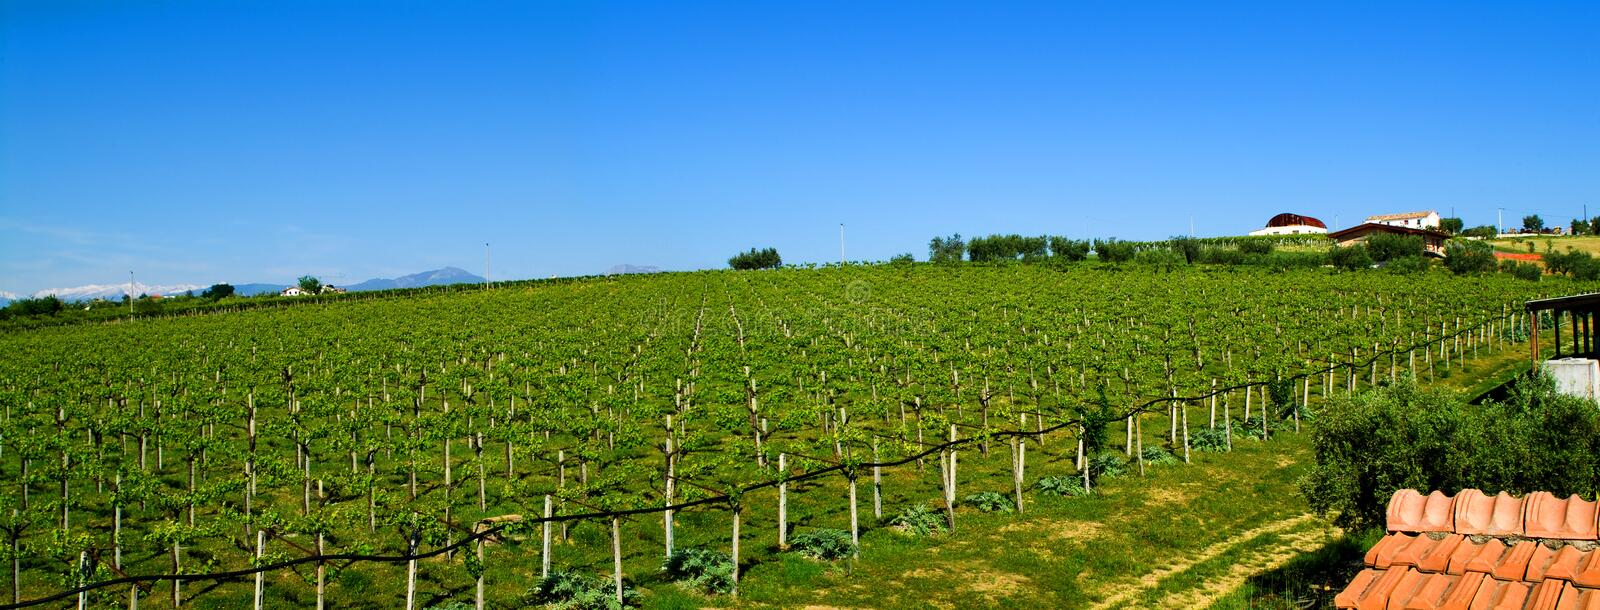 Wineyards foto de stock royalty free